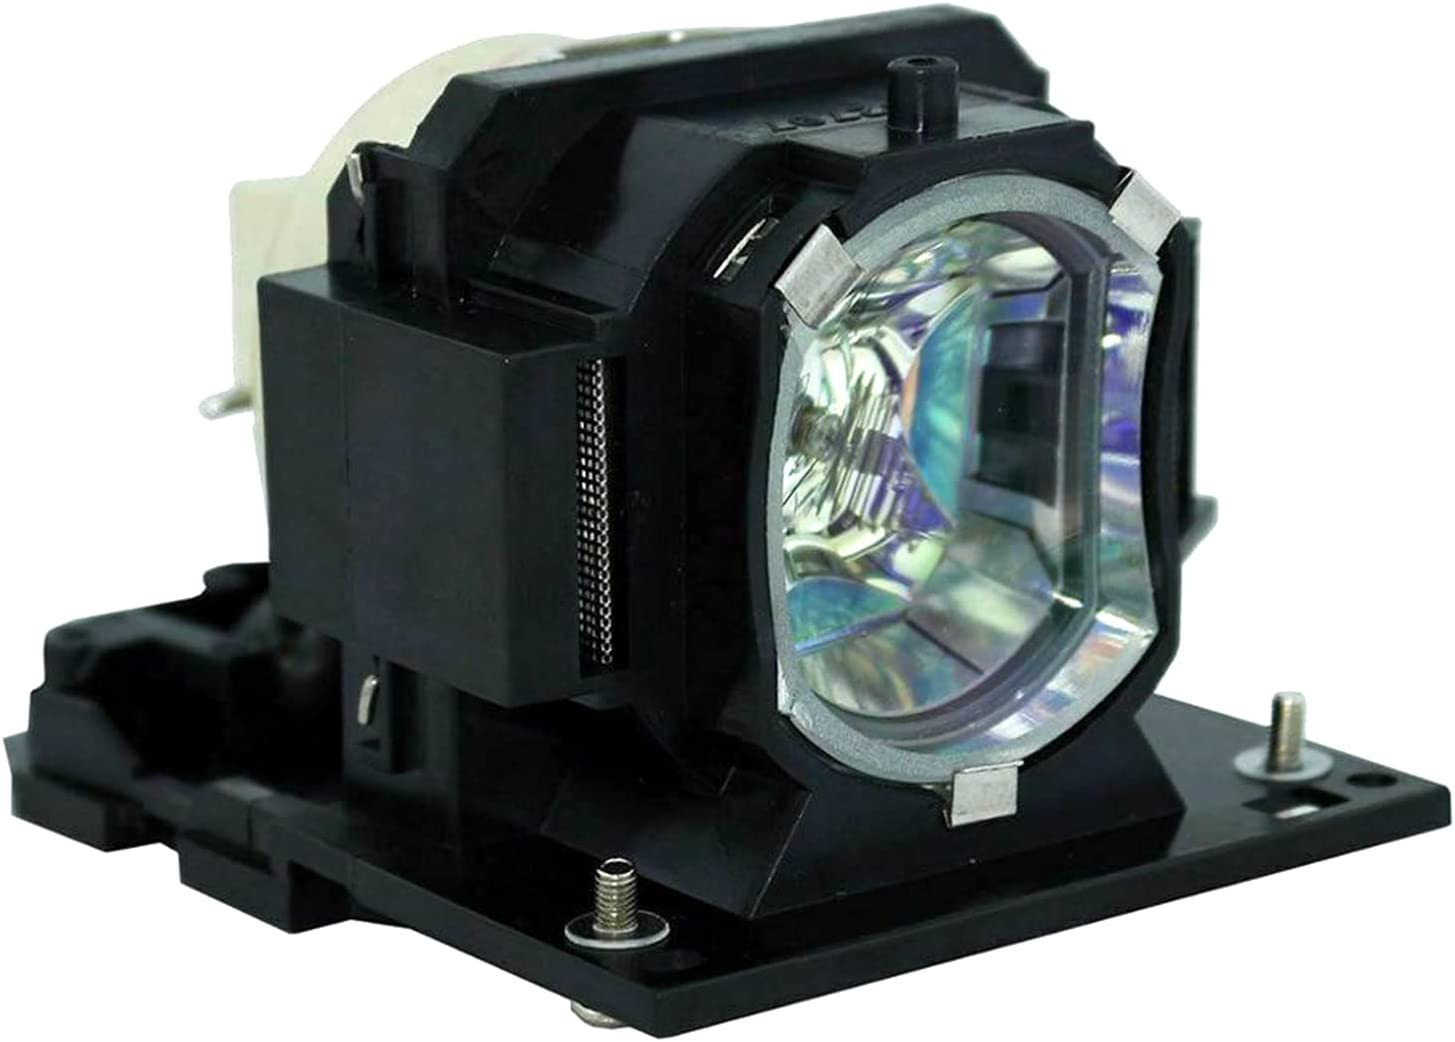 DT01411 Replacement Projector Lamp with Housing for HITACHI CP-A352WN CP-AW2503 CP-AW3003 CP-AW3019WNM CP-AW312WN CP-AX3003 CP-AX3503 CP-AX3505 CP-BW301N CP-BX301N